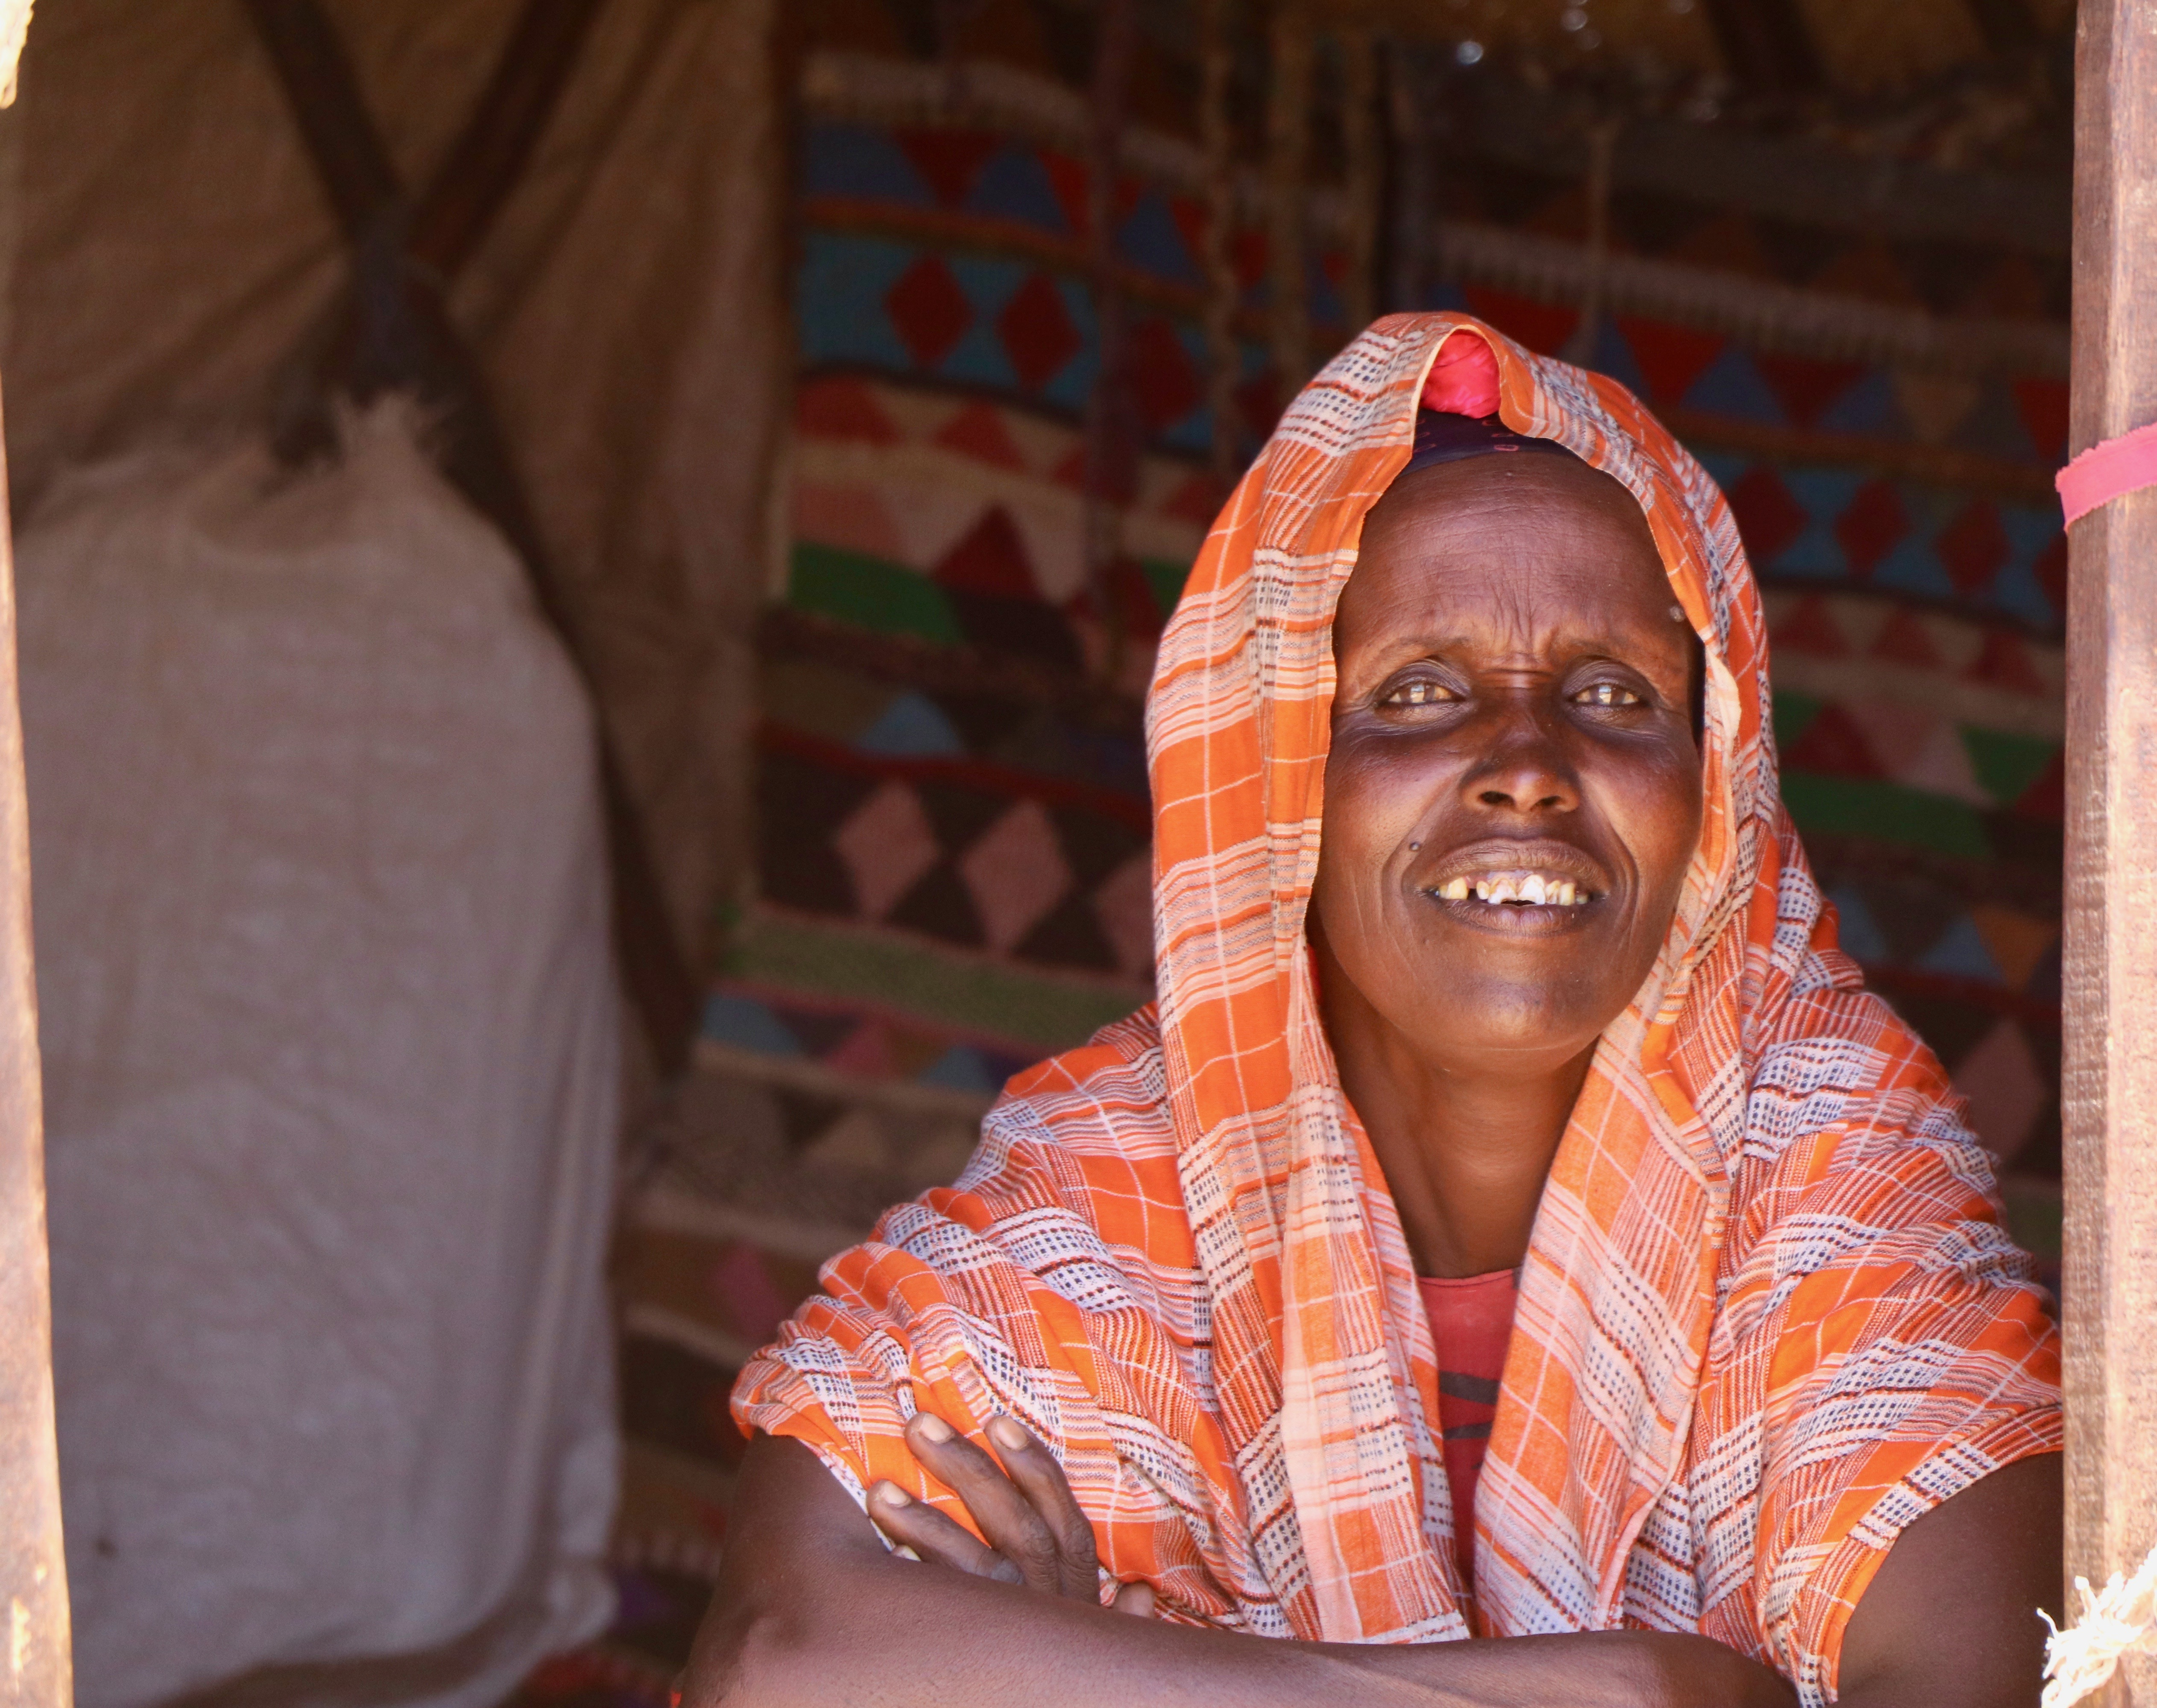 Pastoralists in Somalia's Drought-stricken Puntland Fight for Survival – Voice of America (image)